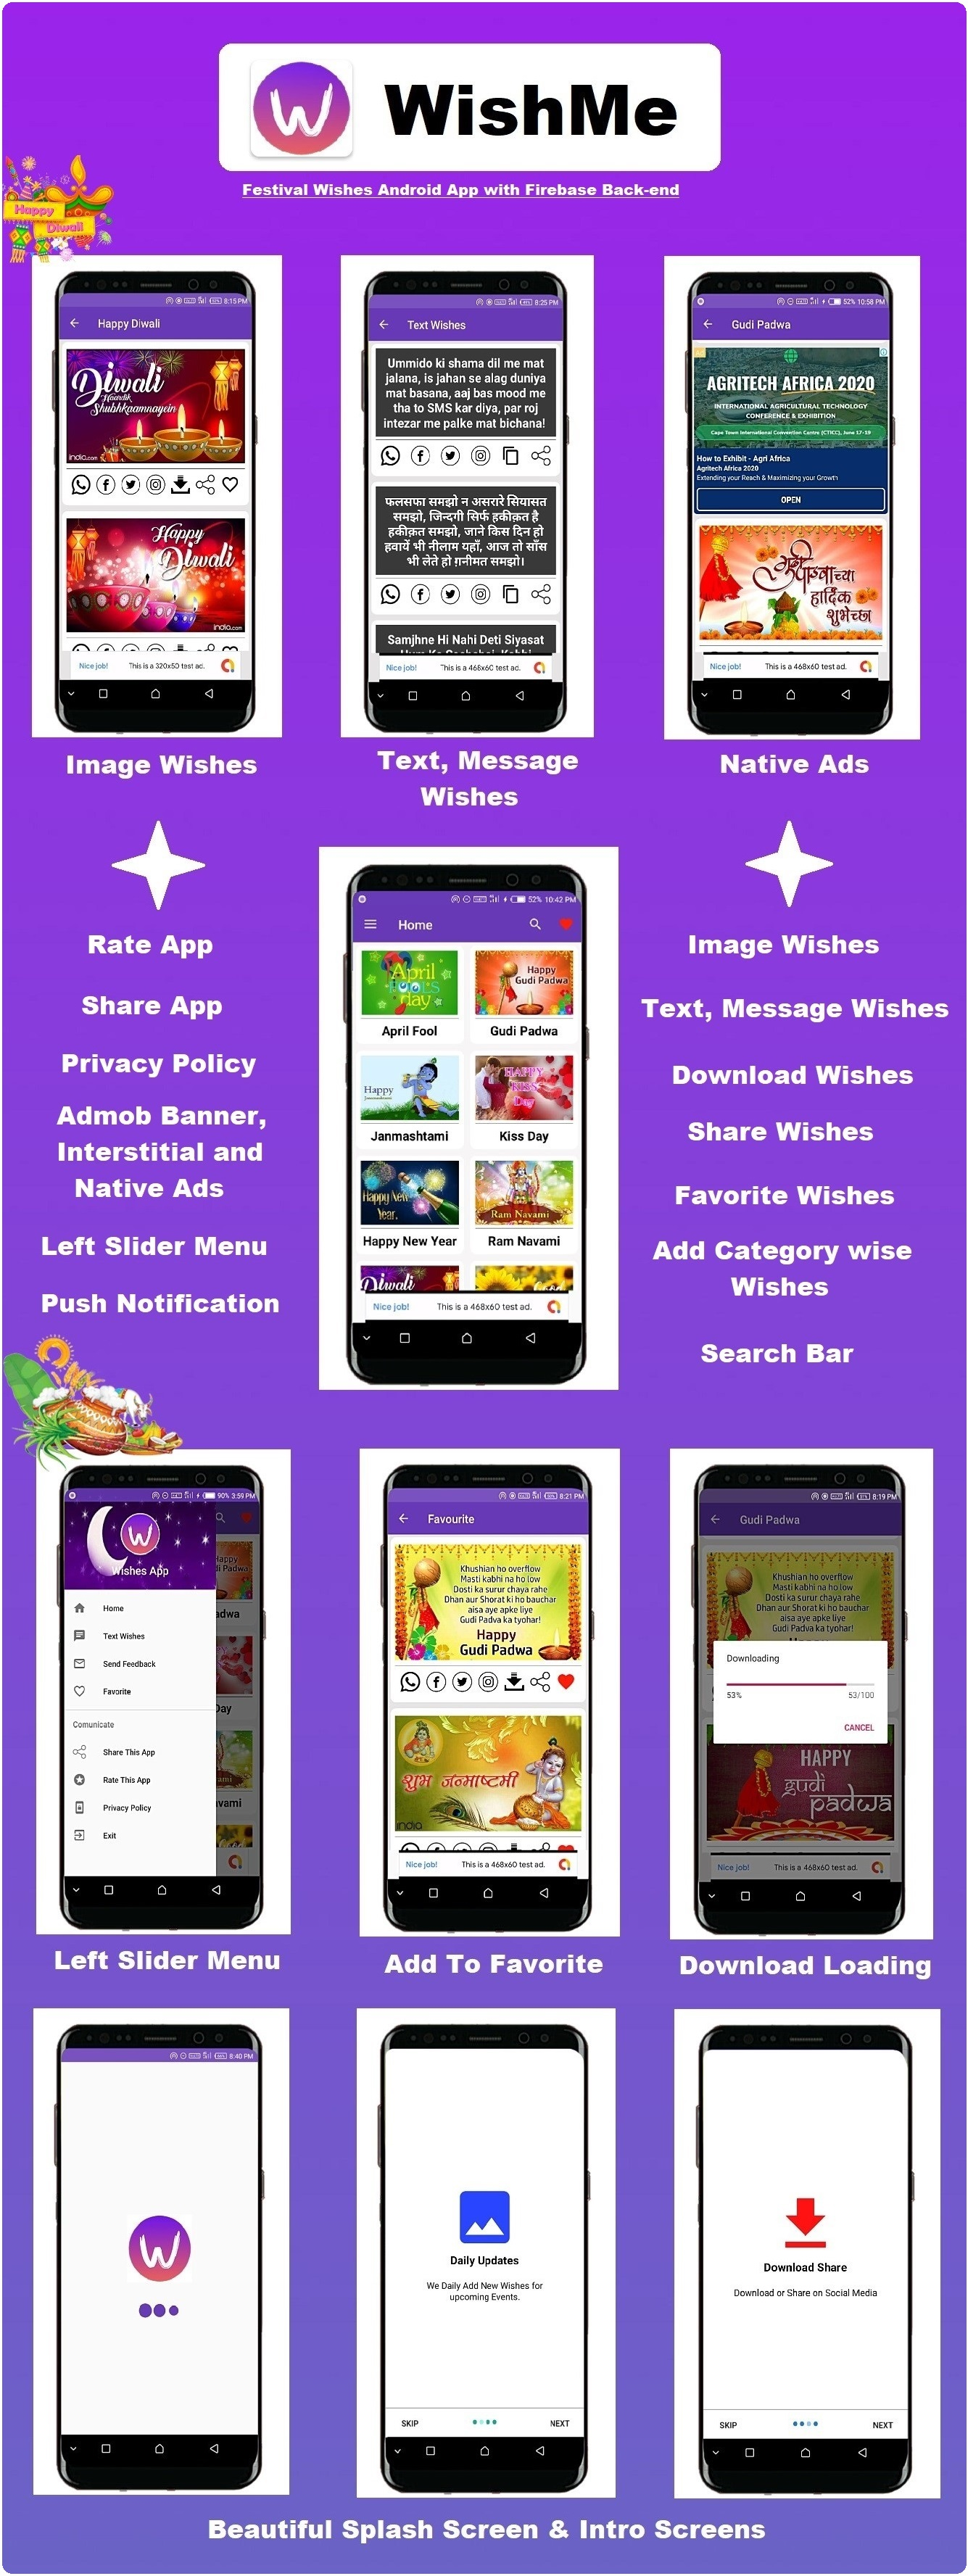 WishMe - Festival Wishes Android App With Firebase Back-end - 3